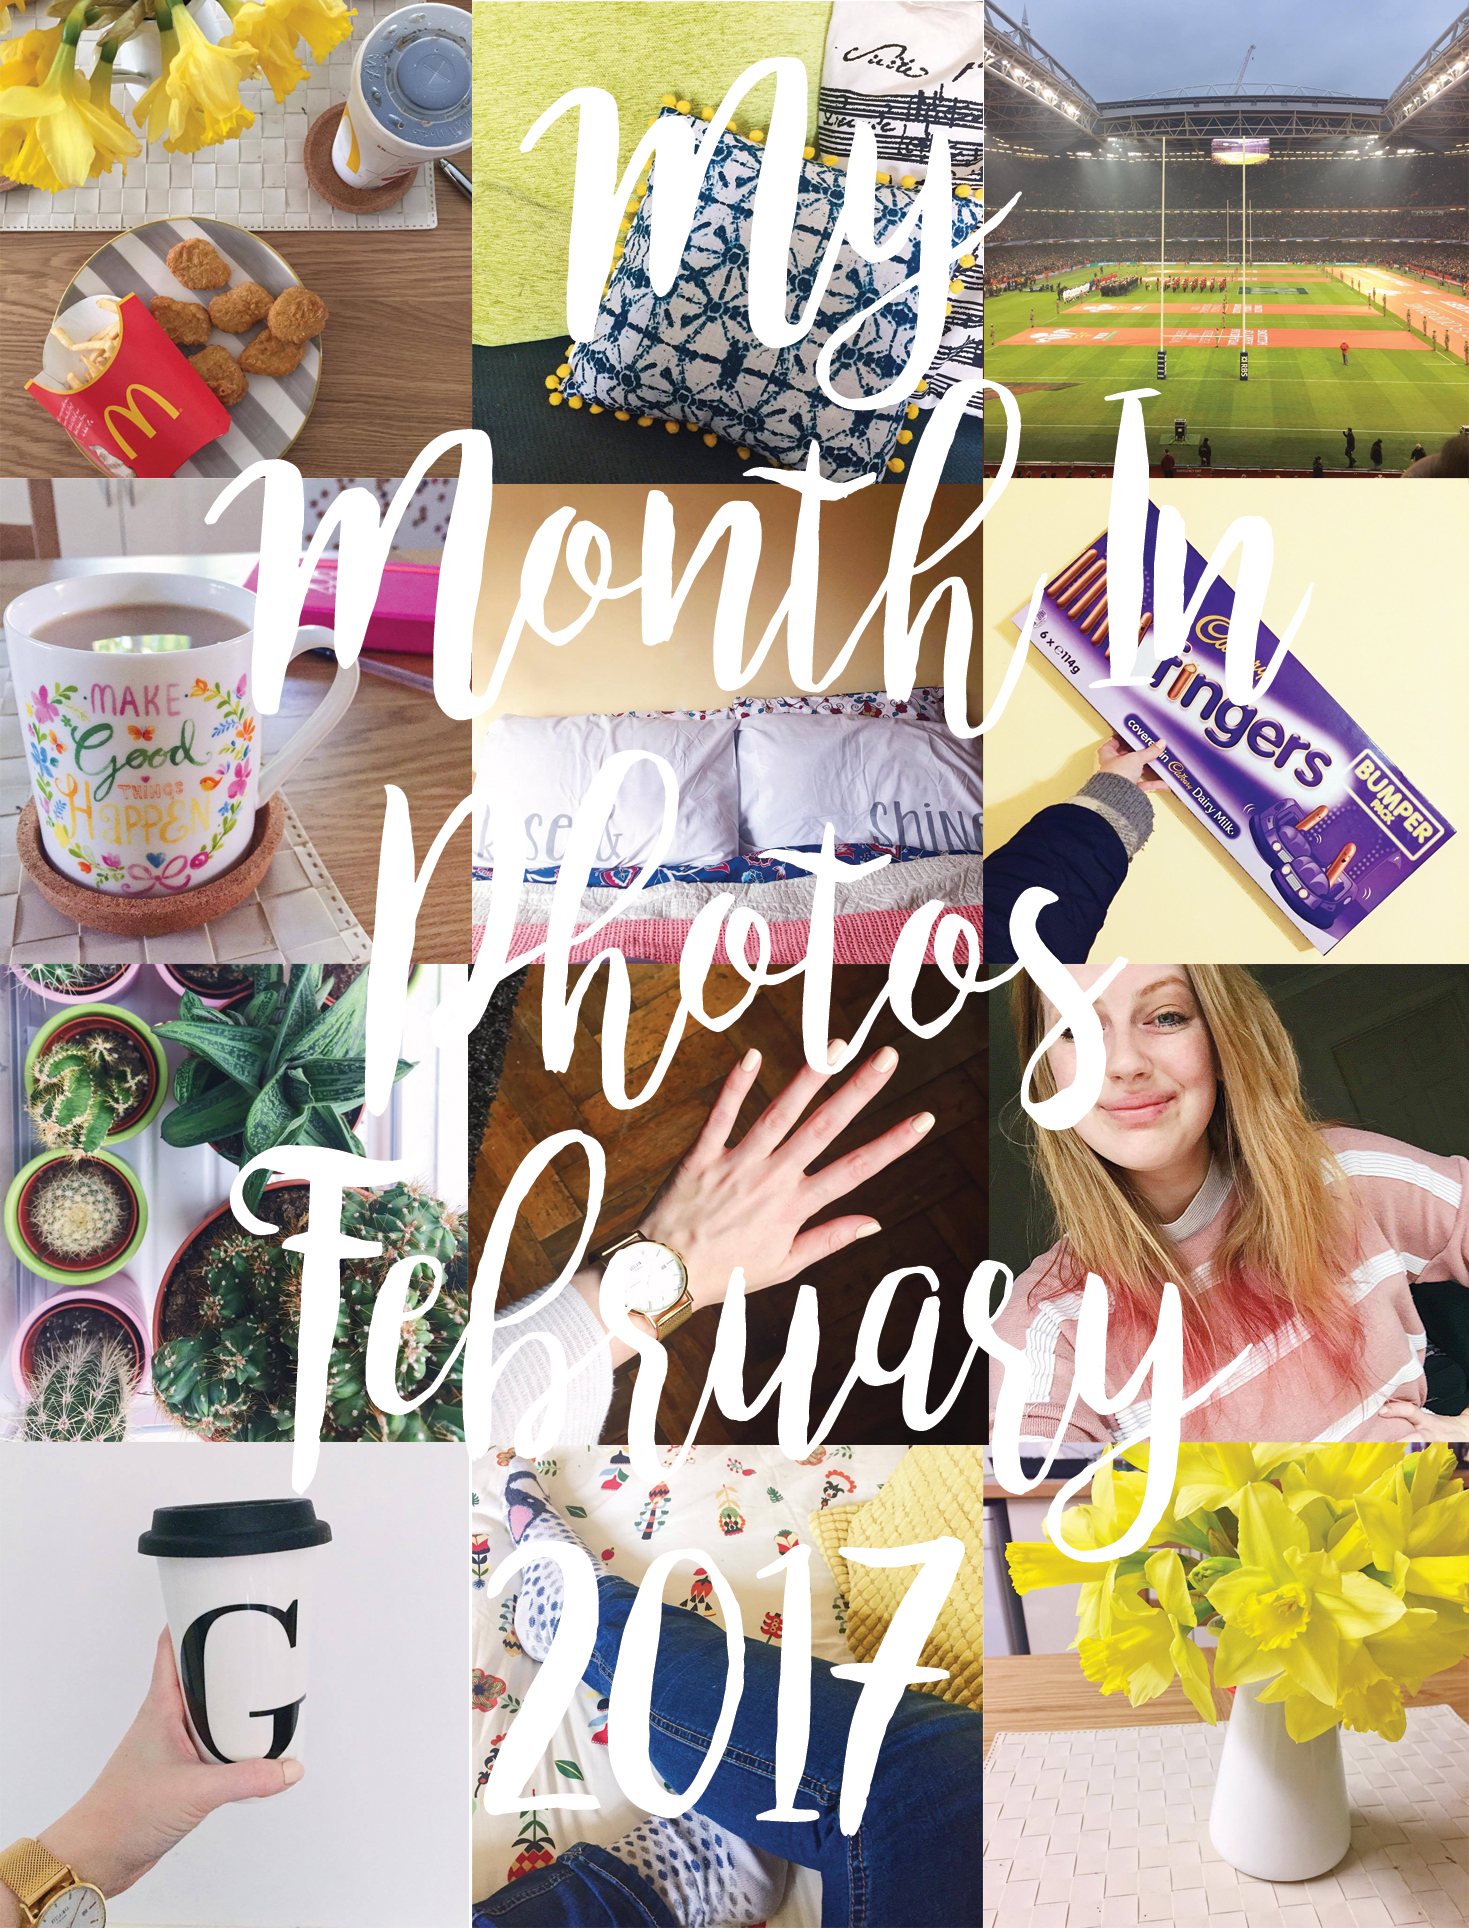 My Month In Photos - February 2017